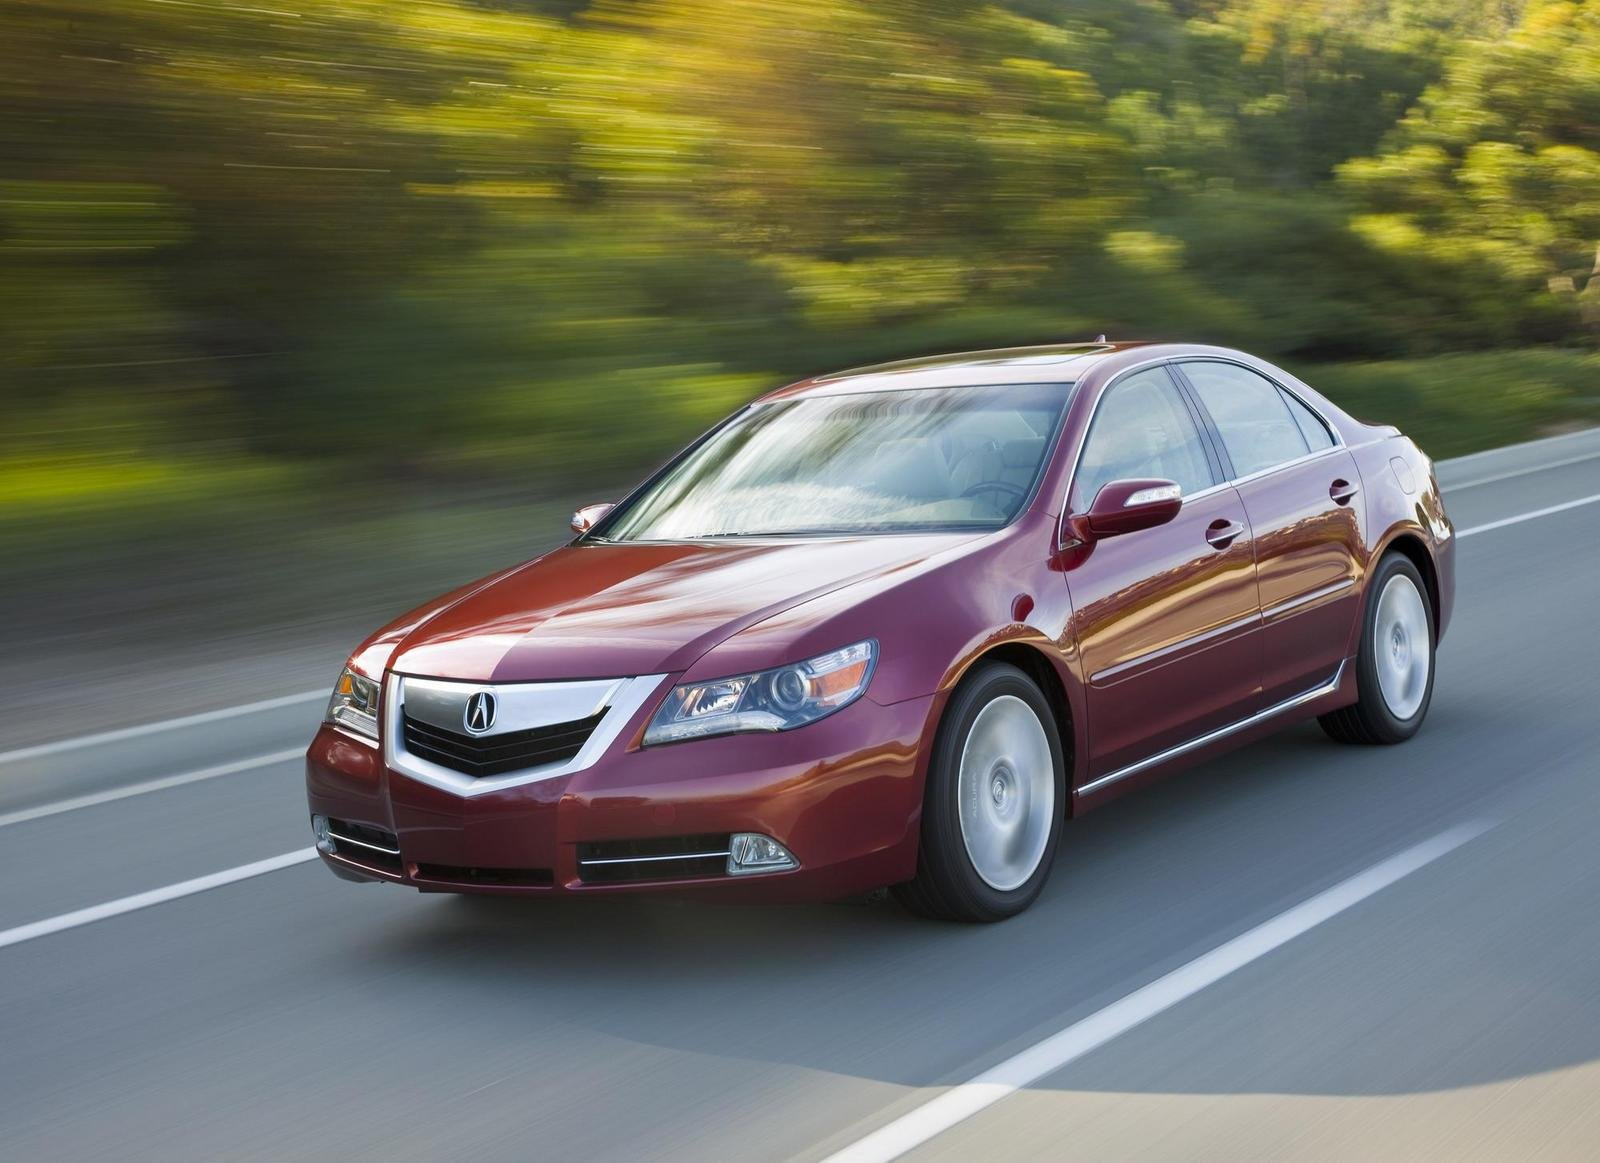 2009 acura rl picture 298820 car review top speed. Black Bedroom Furniture Sets. Home Design Ideas